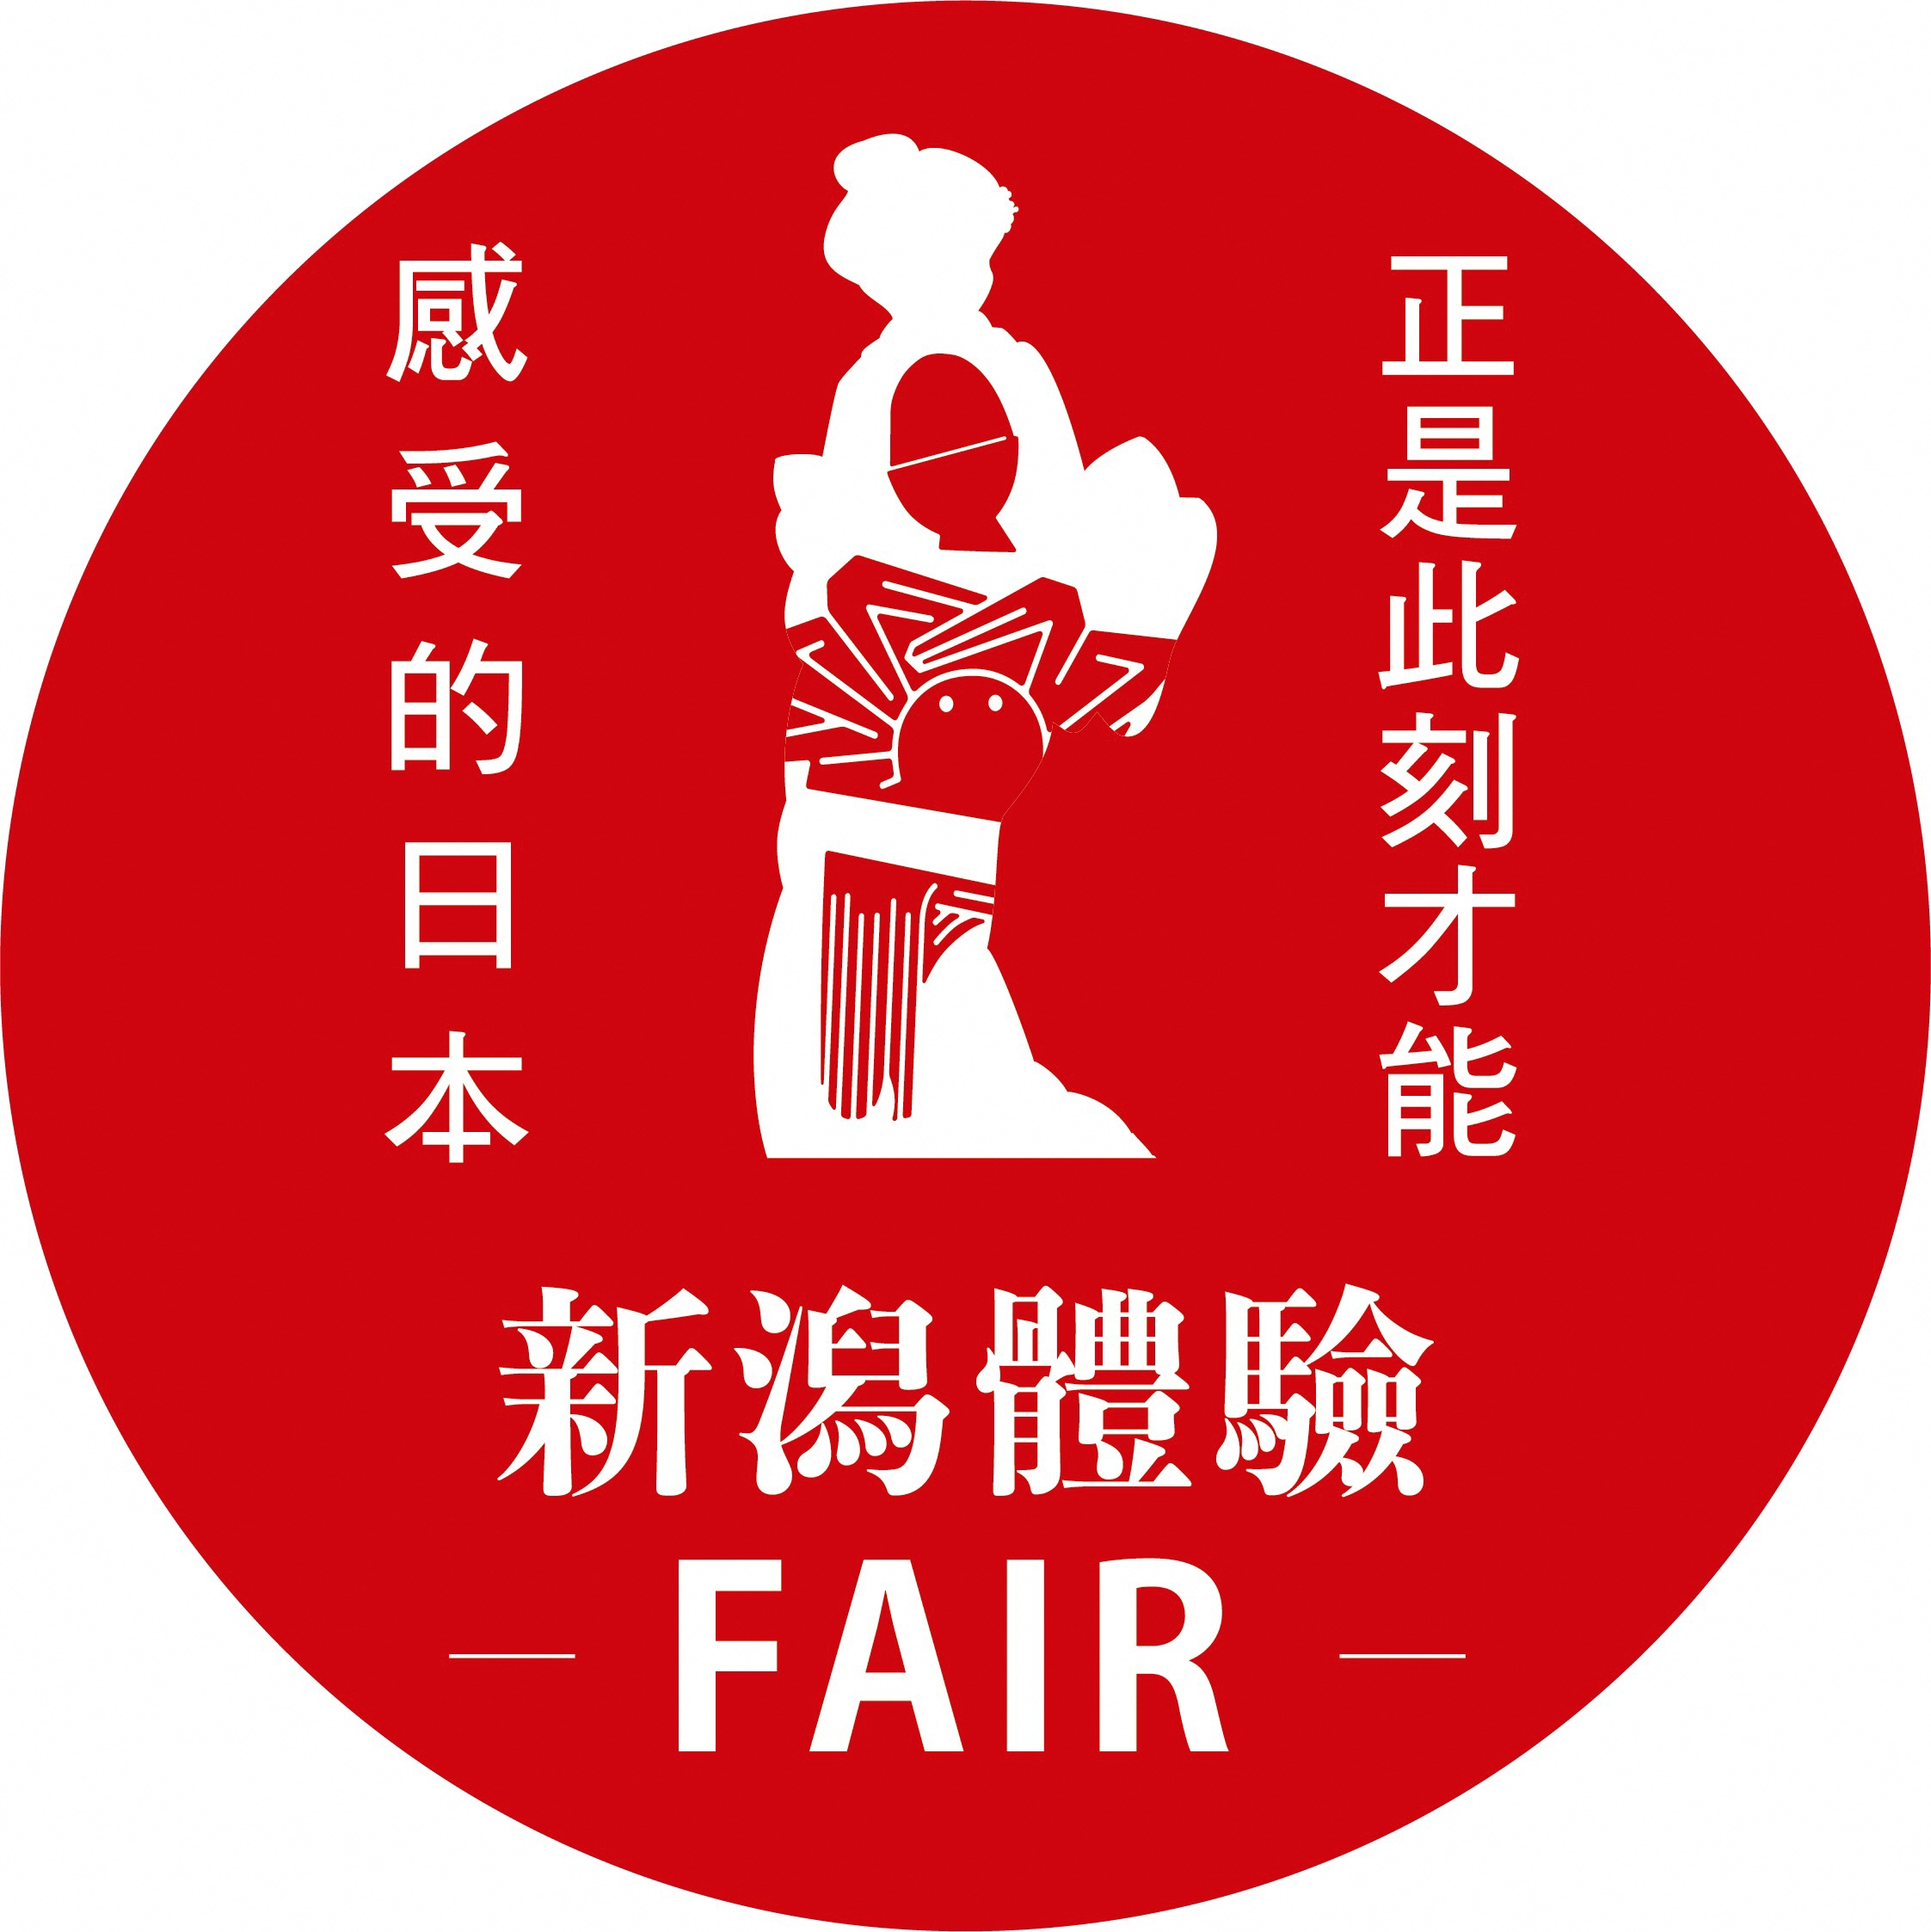 Join winter fair for experiencing Niigata Japan during this unique time